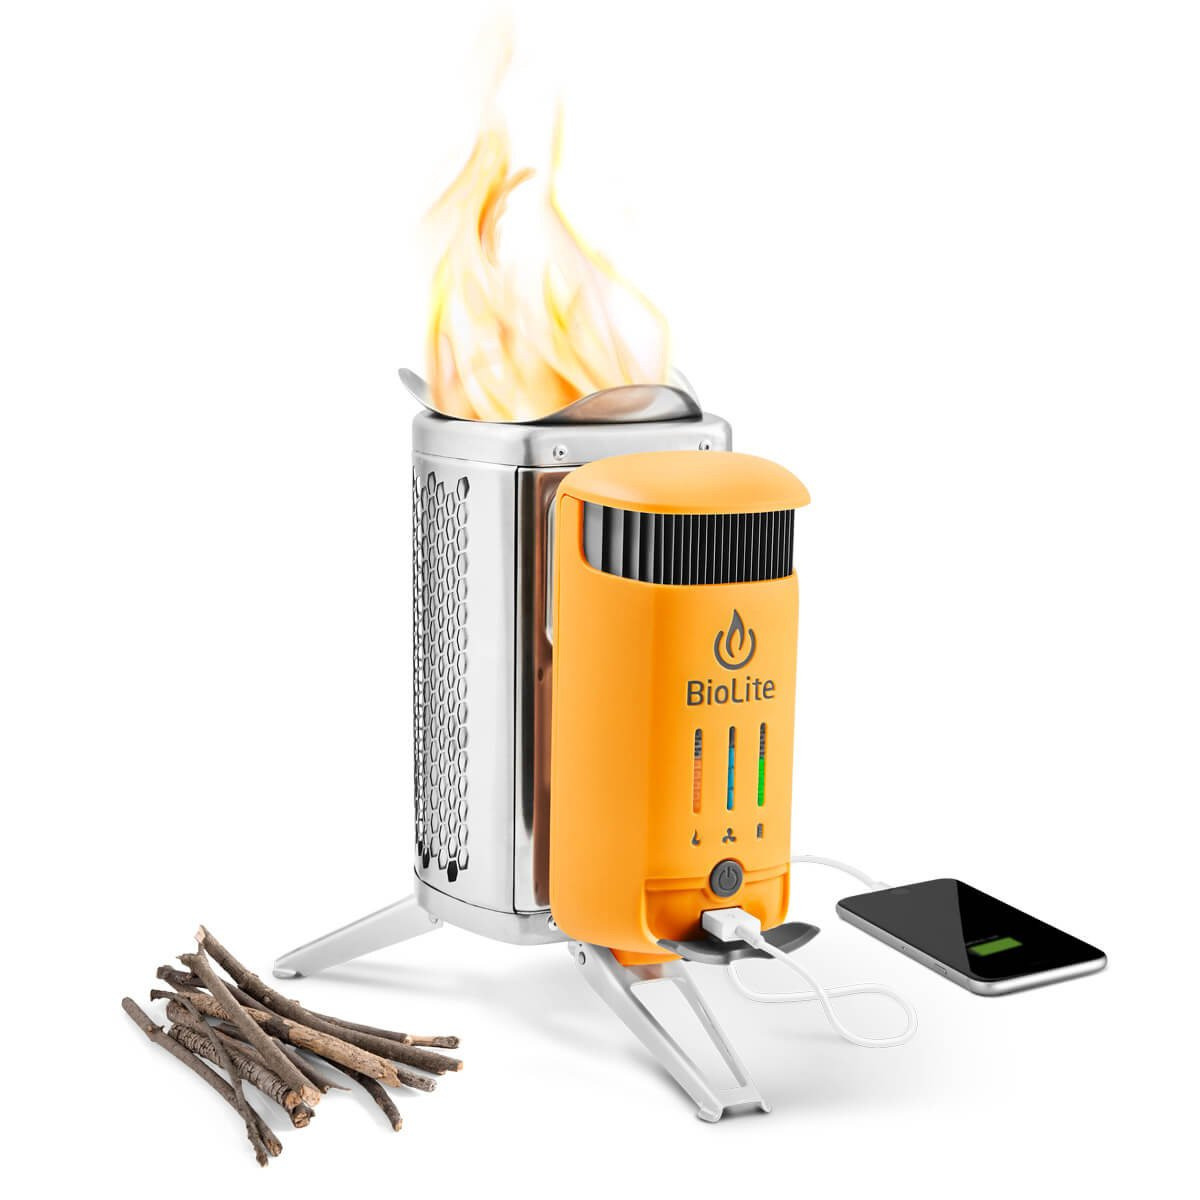 BioLite CampStove 2- Wood-Burning Small Lightweight Stove, USB FlexLight, Fire Starter, Generates 3W of Electricity for USB Charging Using Excess Heat, 5 x 5 x 8.3 Inches, Silver/Yellow (CSC1001) by BioLite (Image #1)